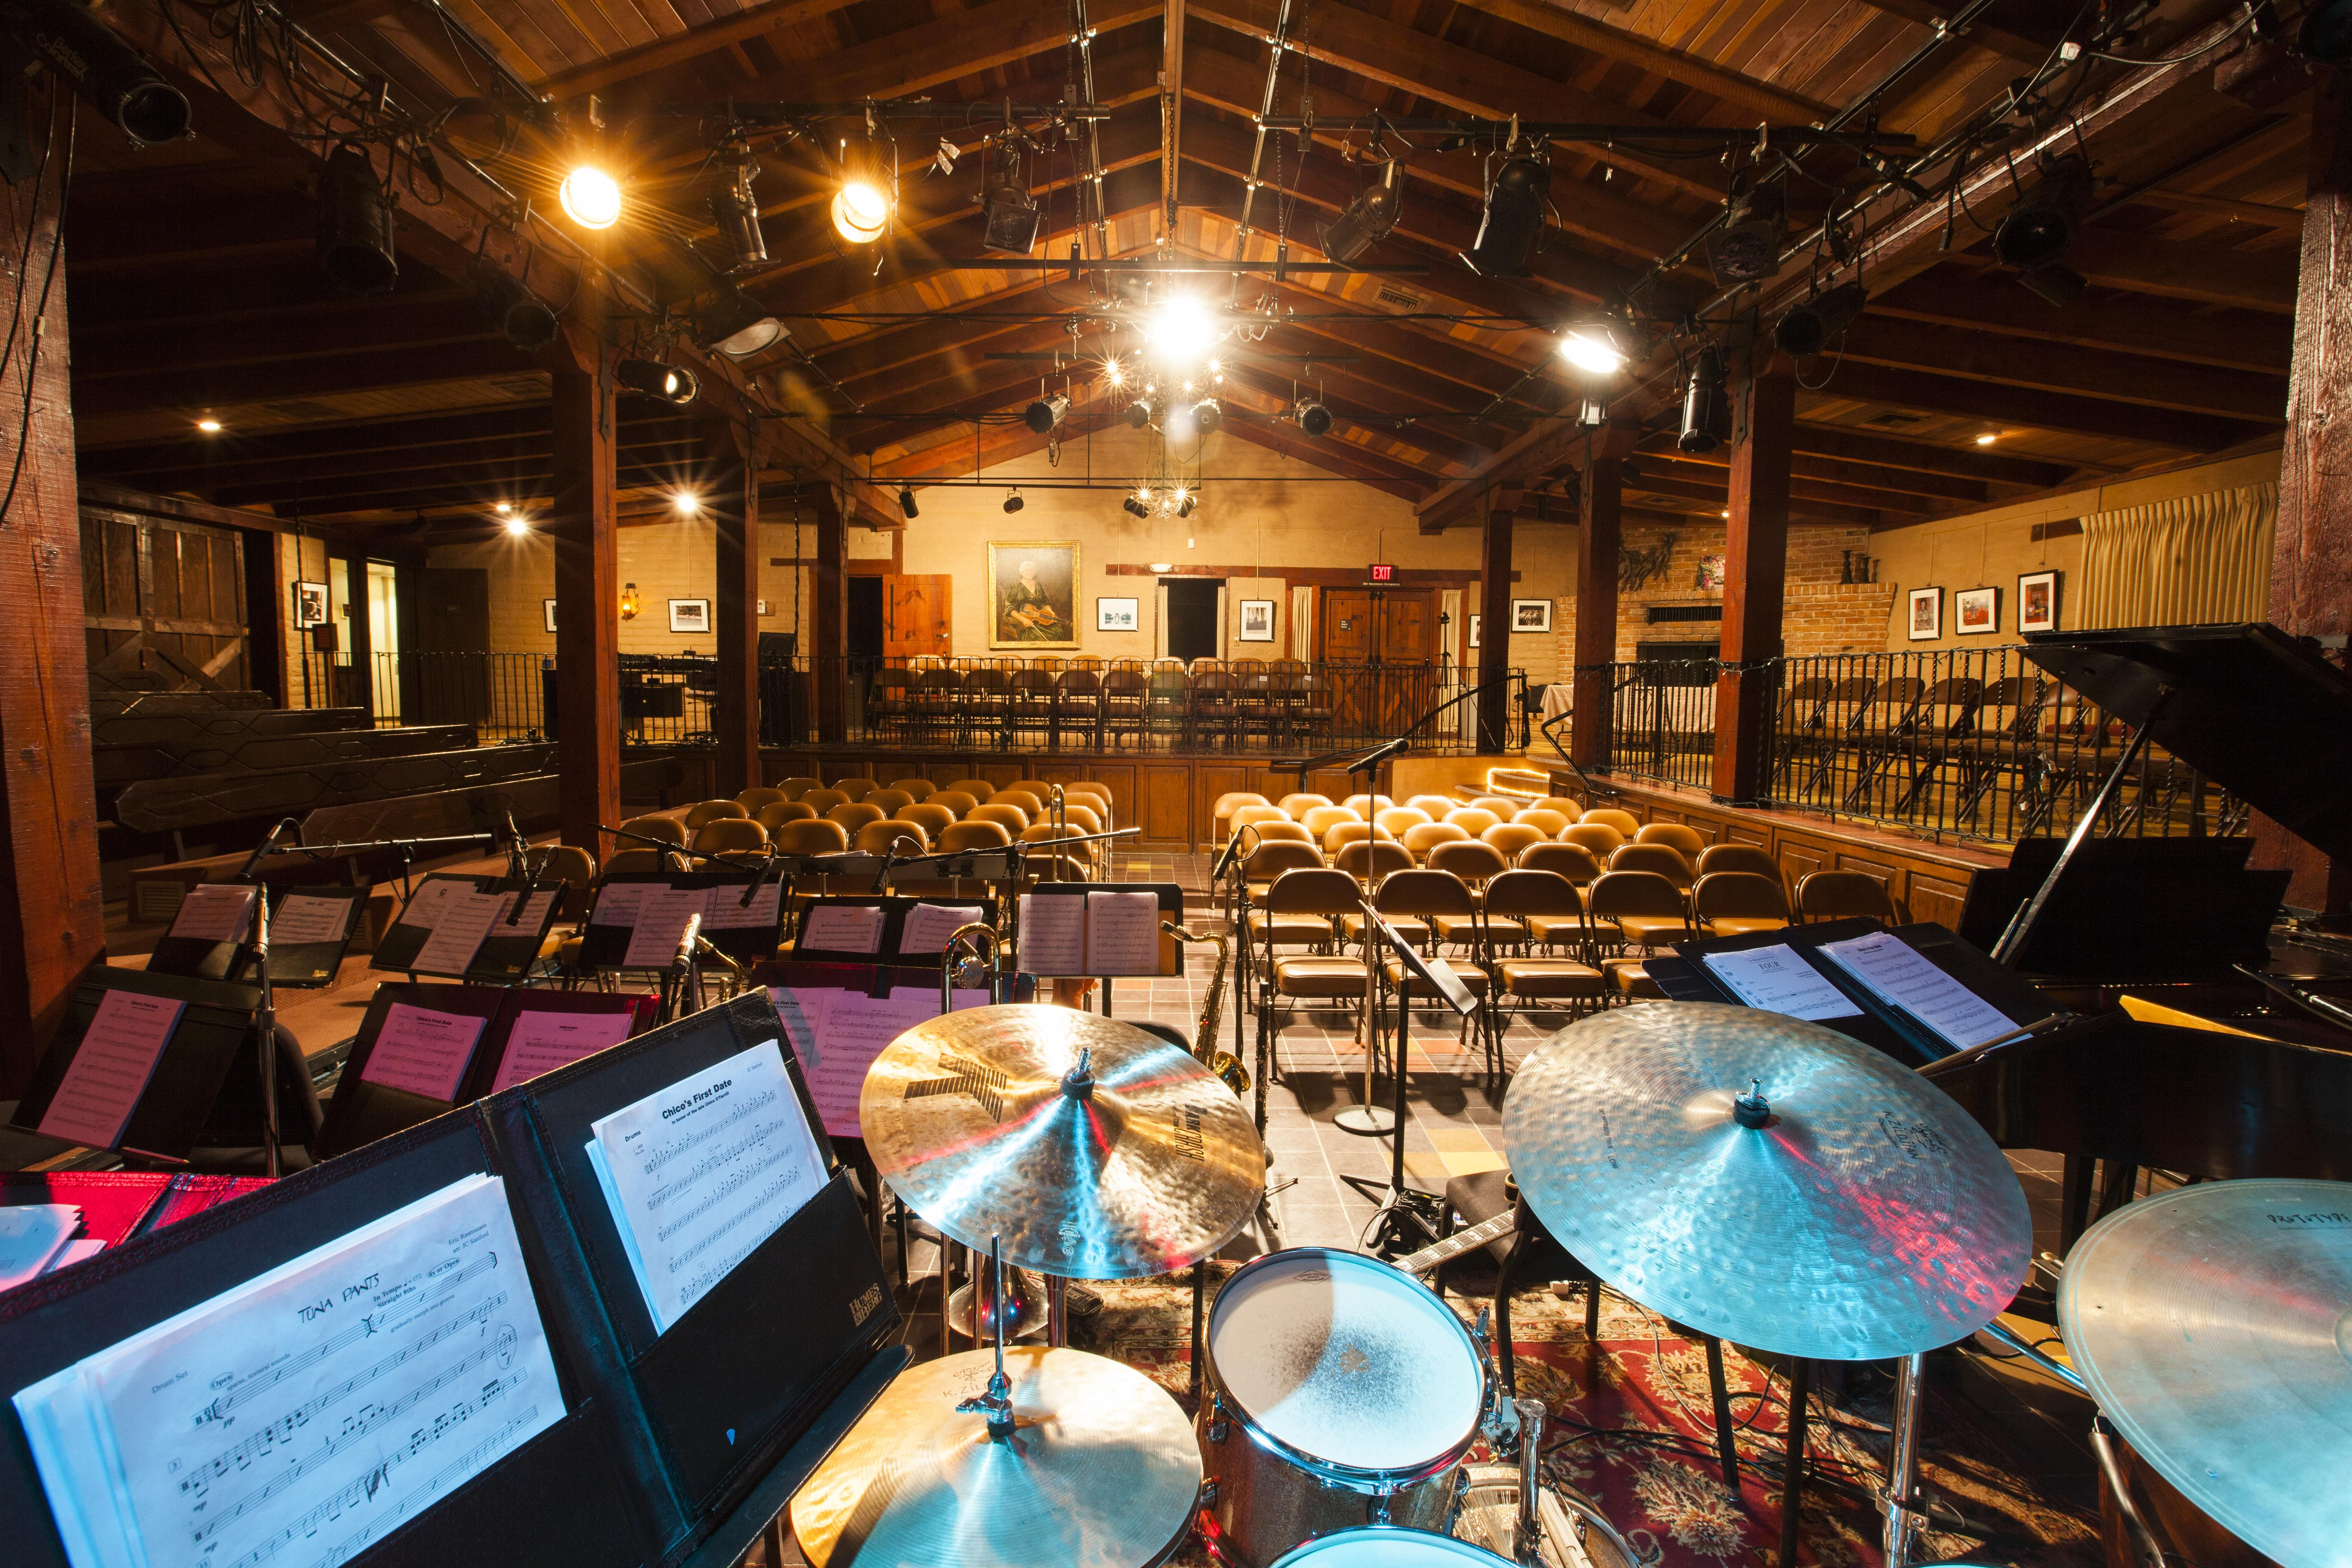 ASU Kerr venue interior from behind a drum kit in the stage area, showing empty seats